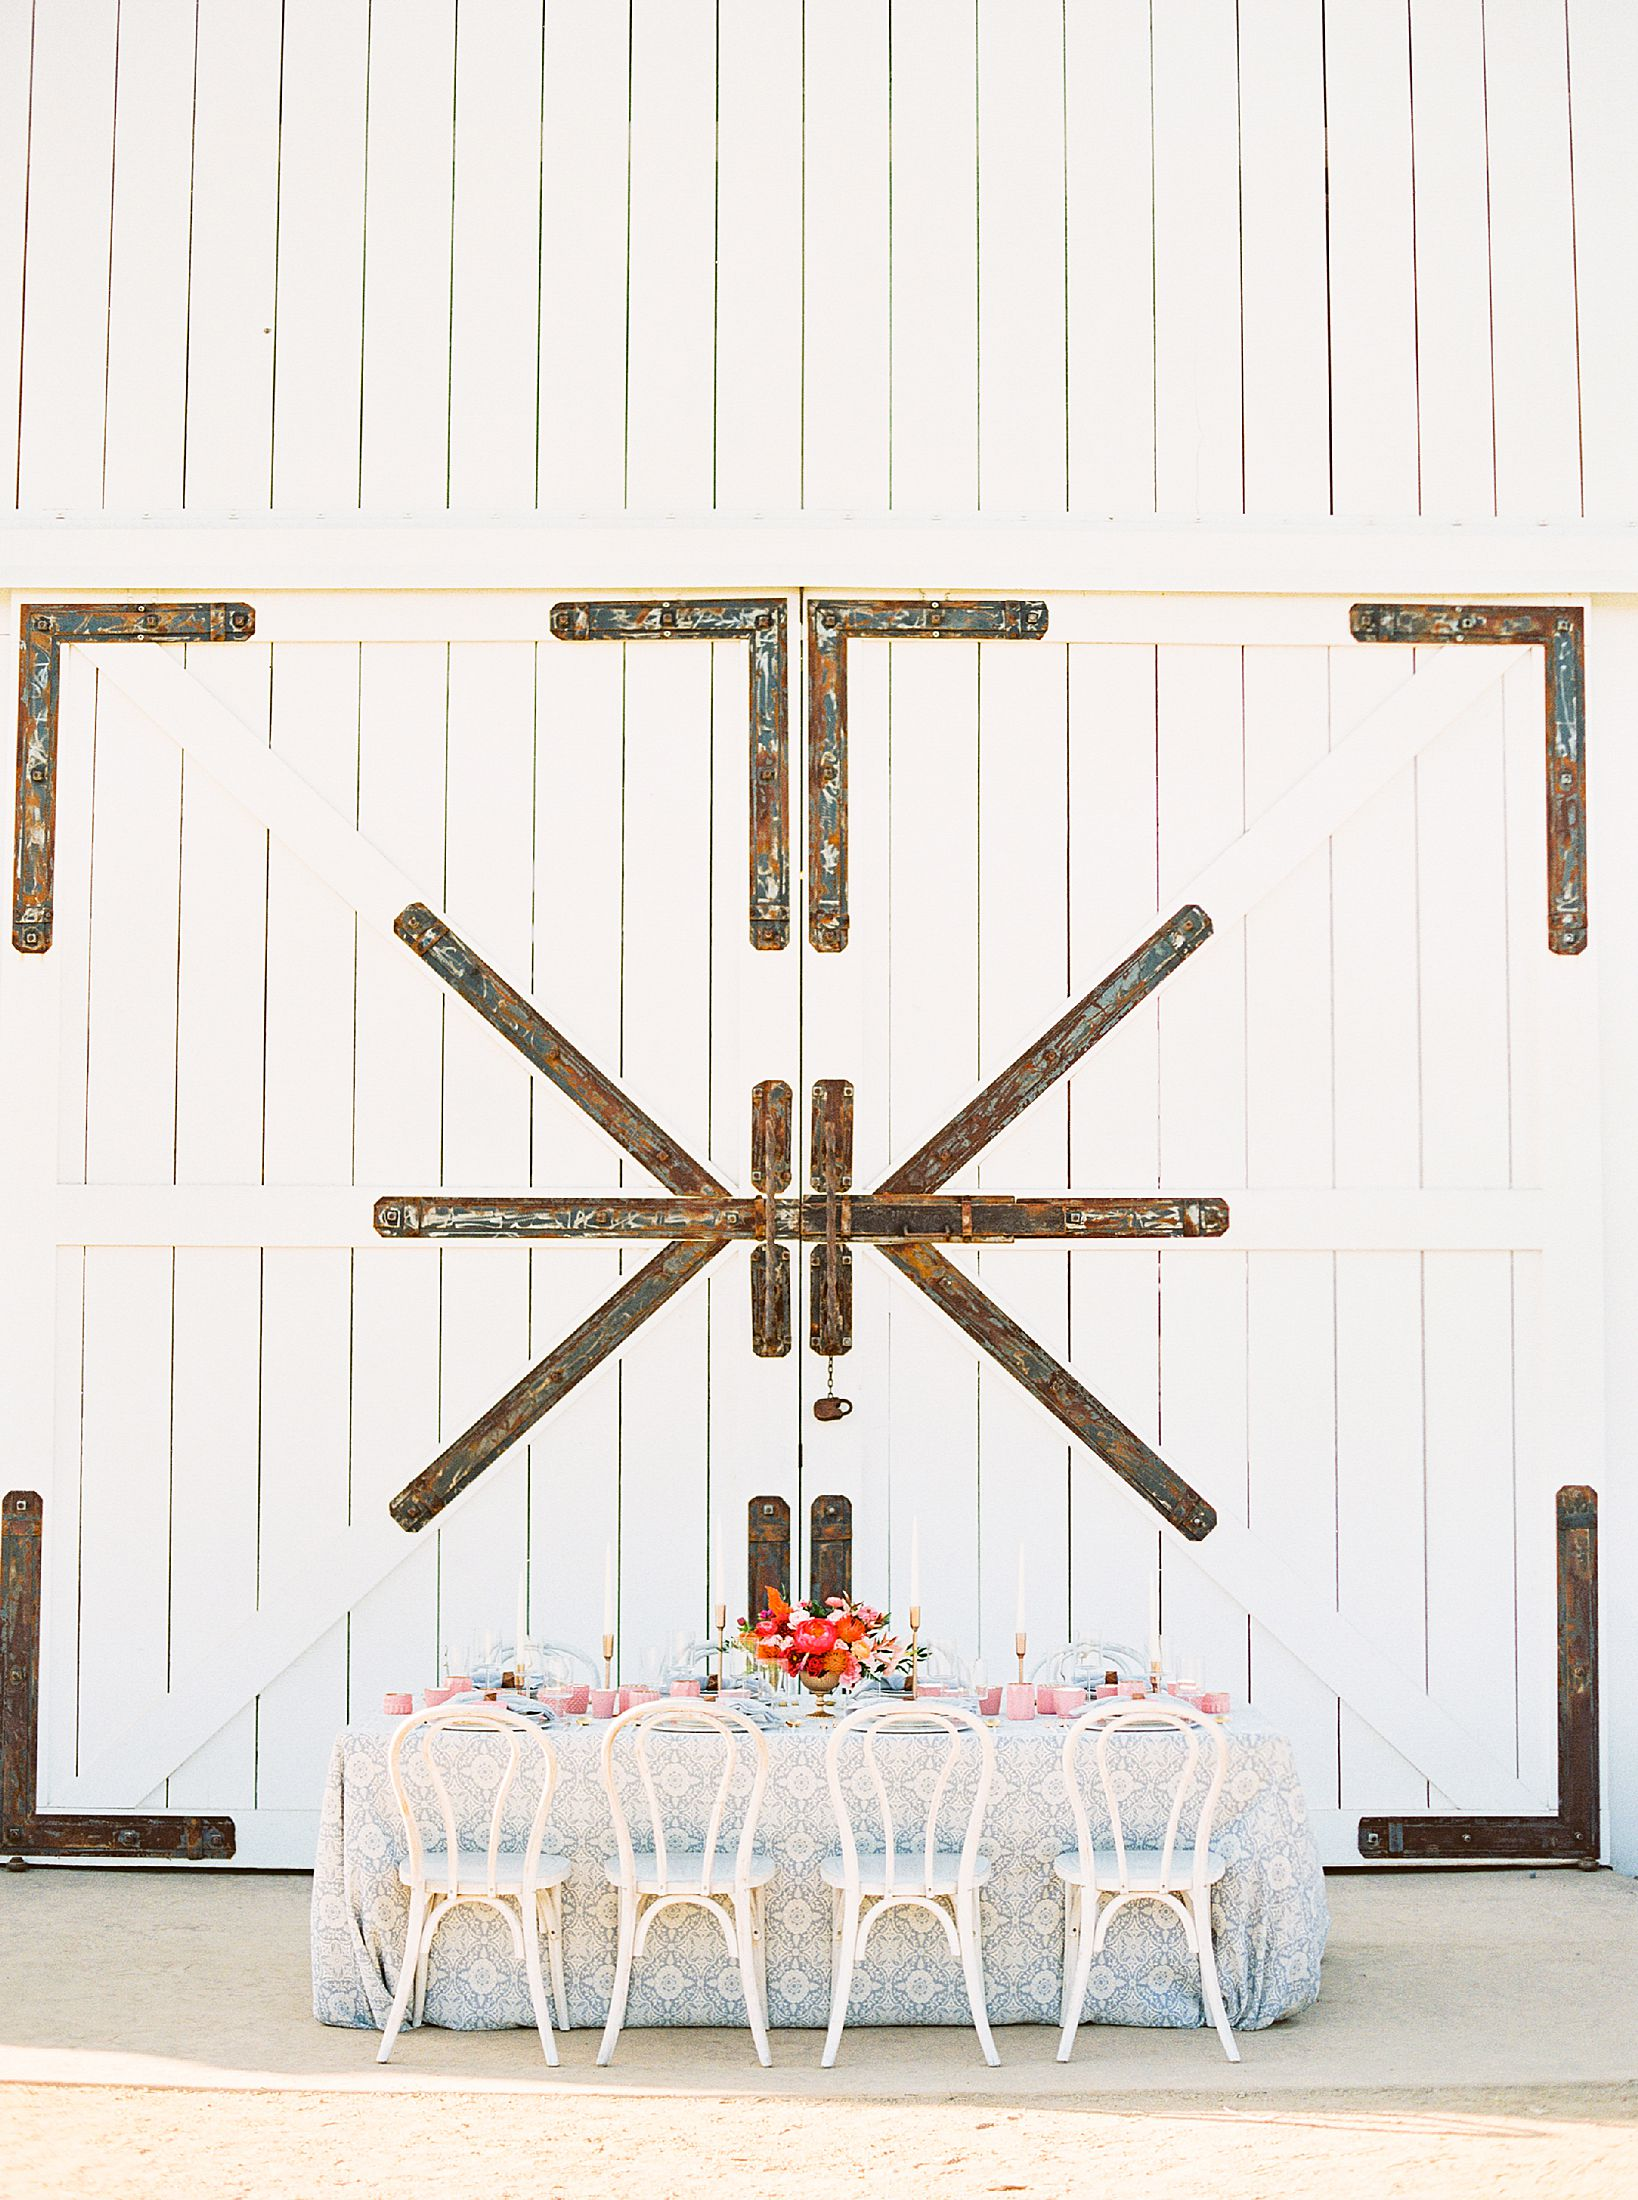 White Barn Edna Valley Wedding Inspiration - San Luis Obispo Wedding - Featured on Green Wedding Shoes - Ashley Baumgartner - FM Events SLO - SLO Wedding Photographer_0008.jpg